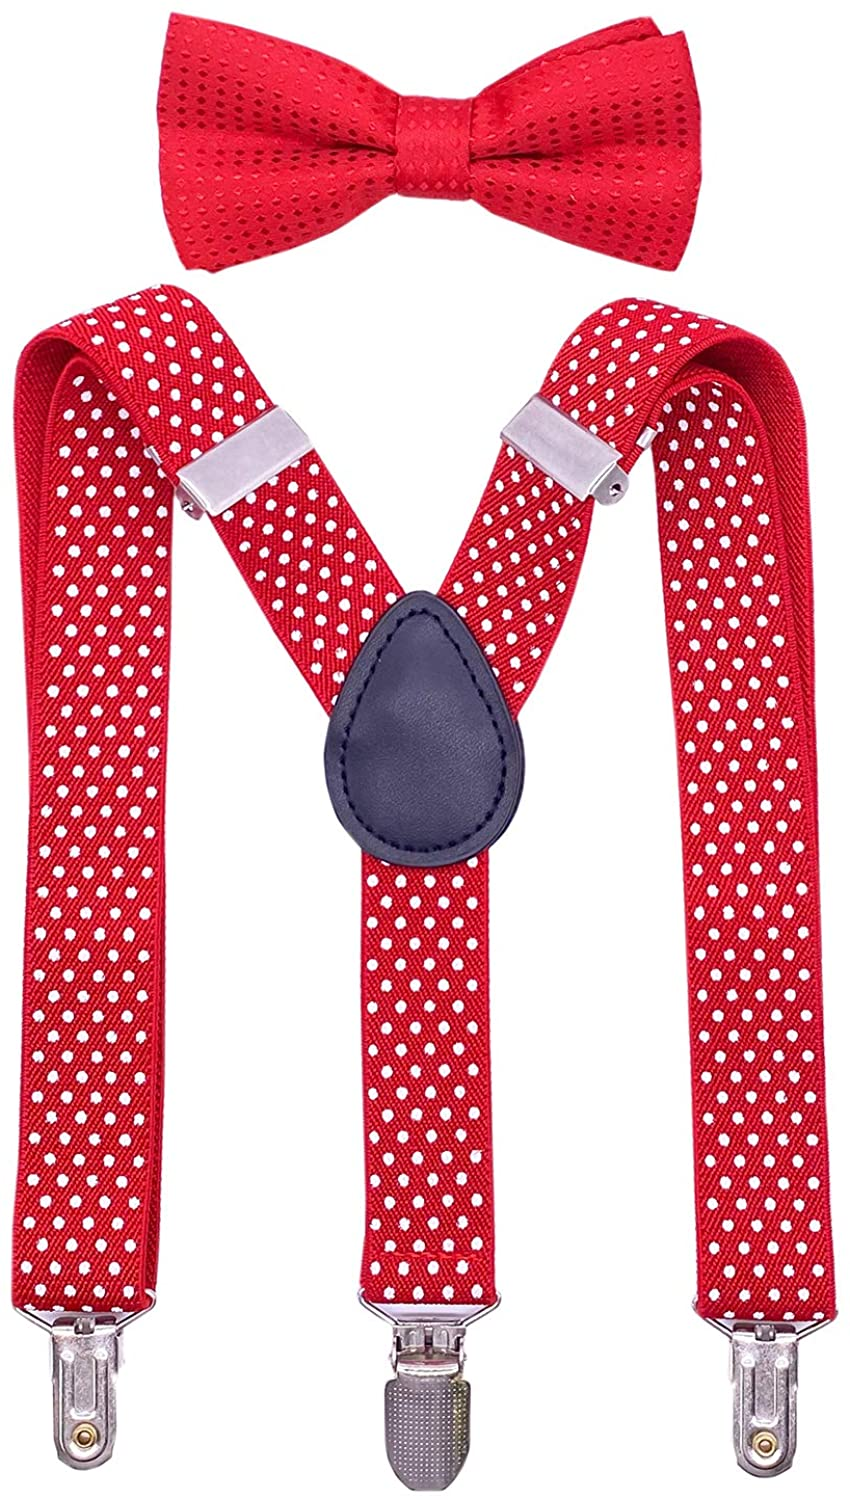 JTCMOJS Polka Dot Boys Suspenders and Bow Tie Set Kids Adjustable Y Back 3 Clips